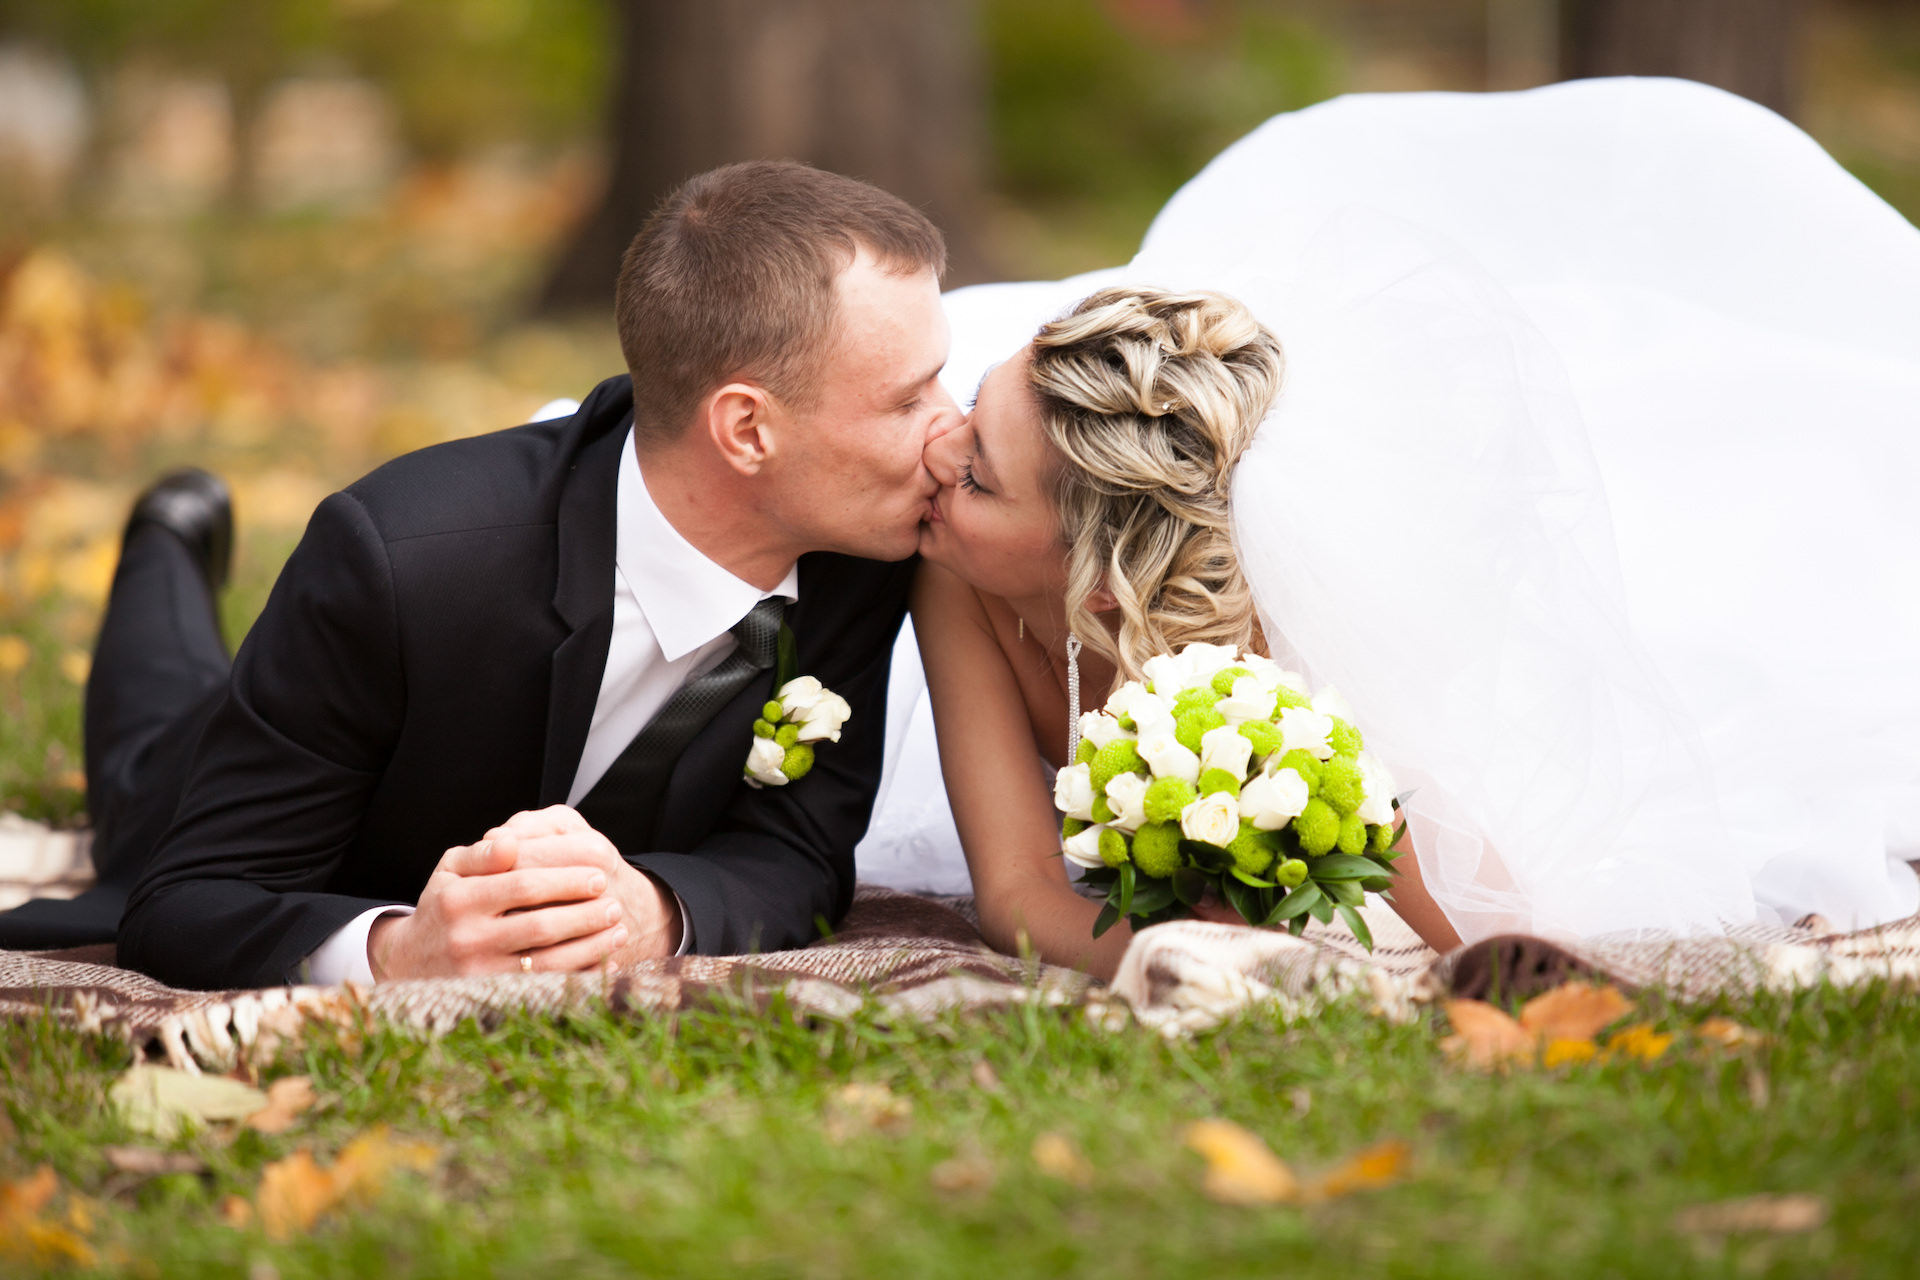 newly married couple lying on grass at park and kissing